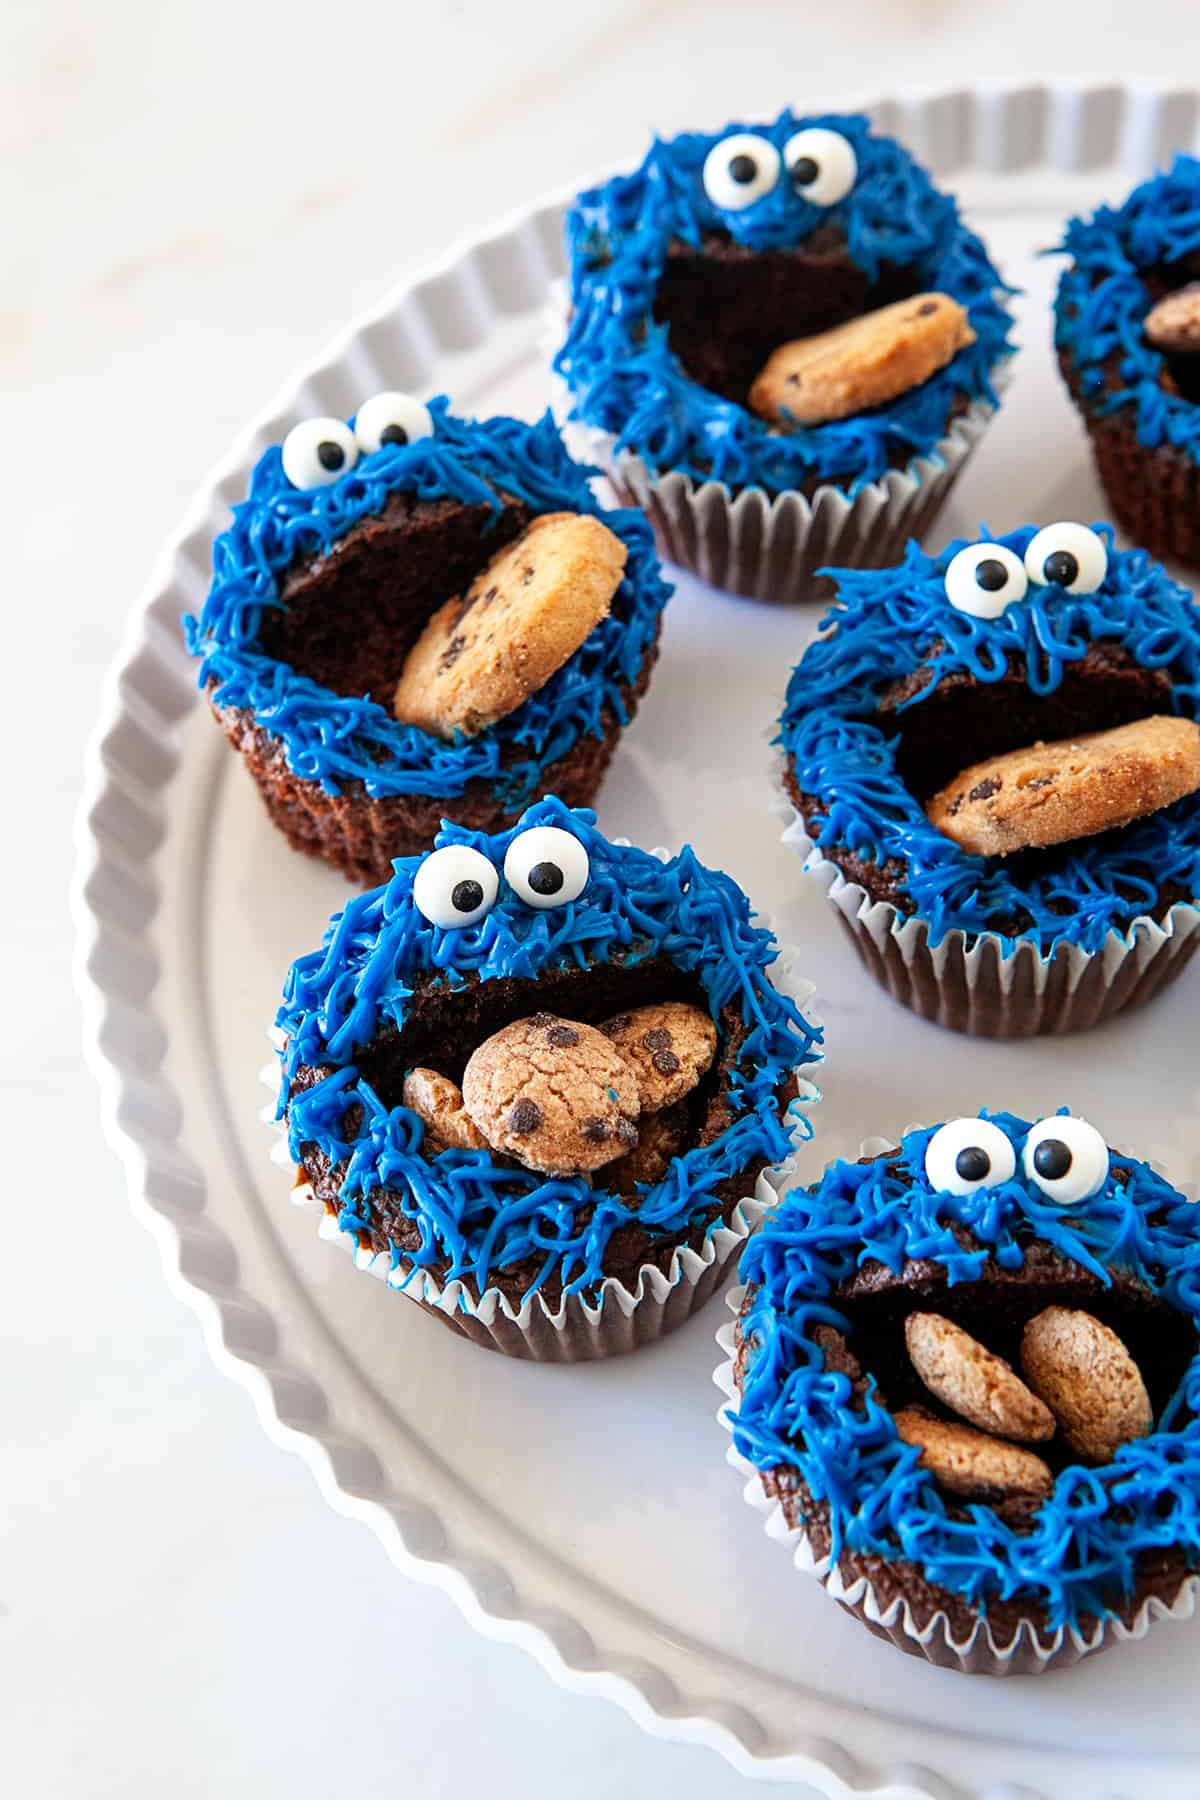 Fun Cookie Monster Cupcakes on a platter